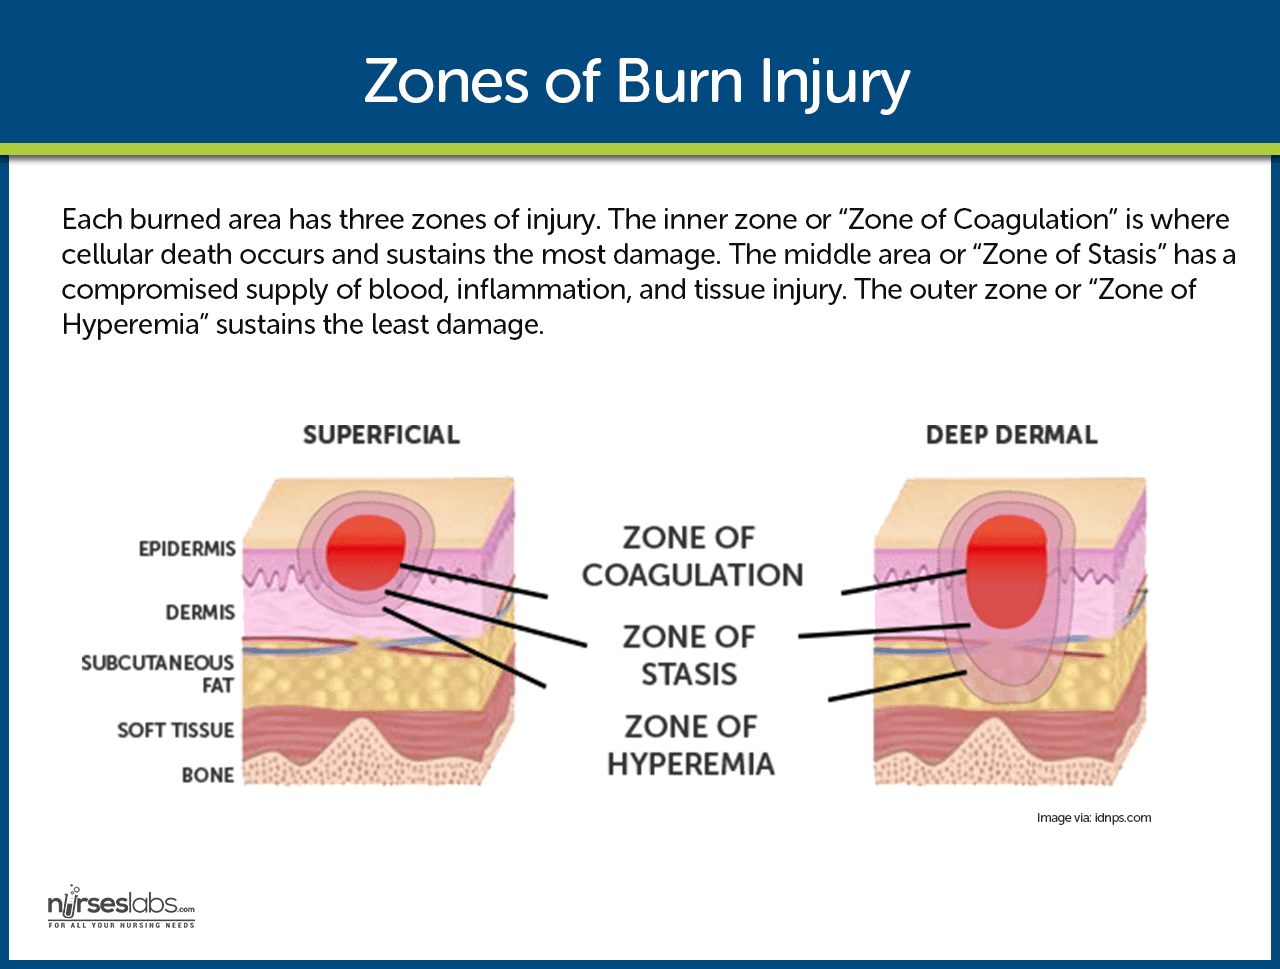 Zones of Burn Injury